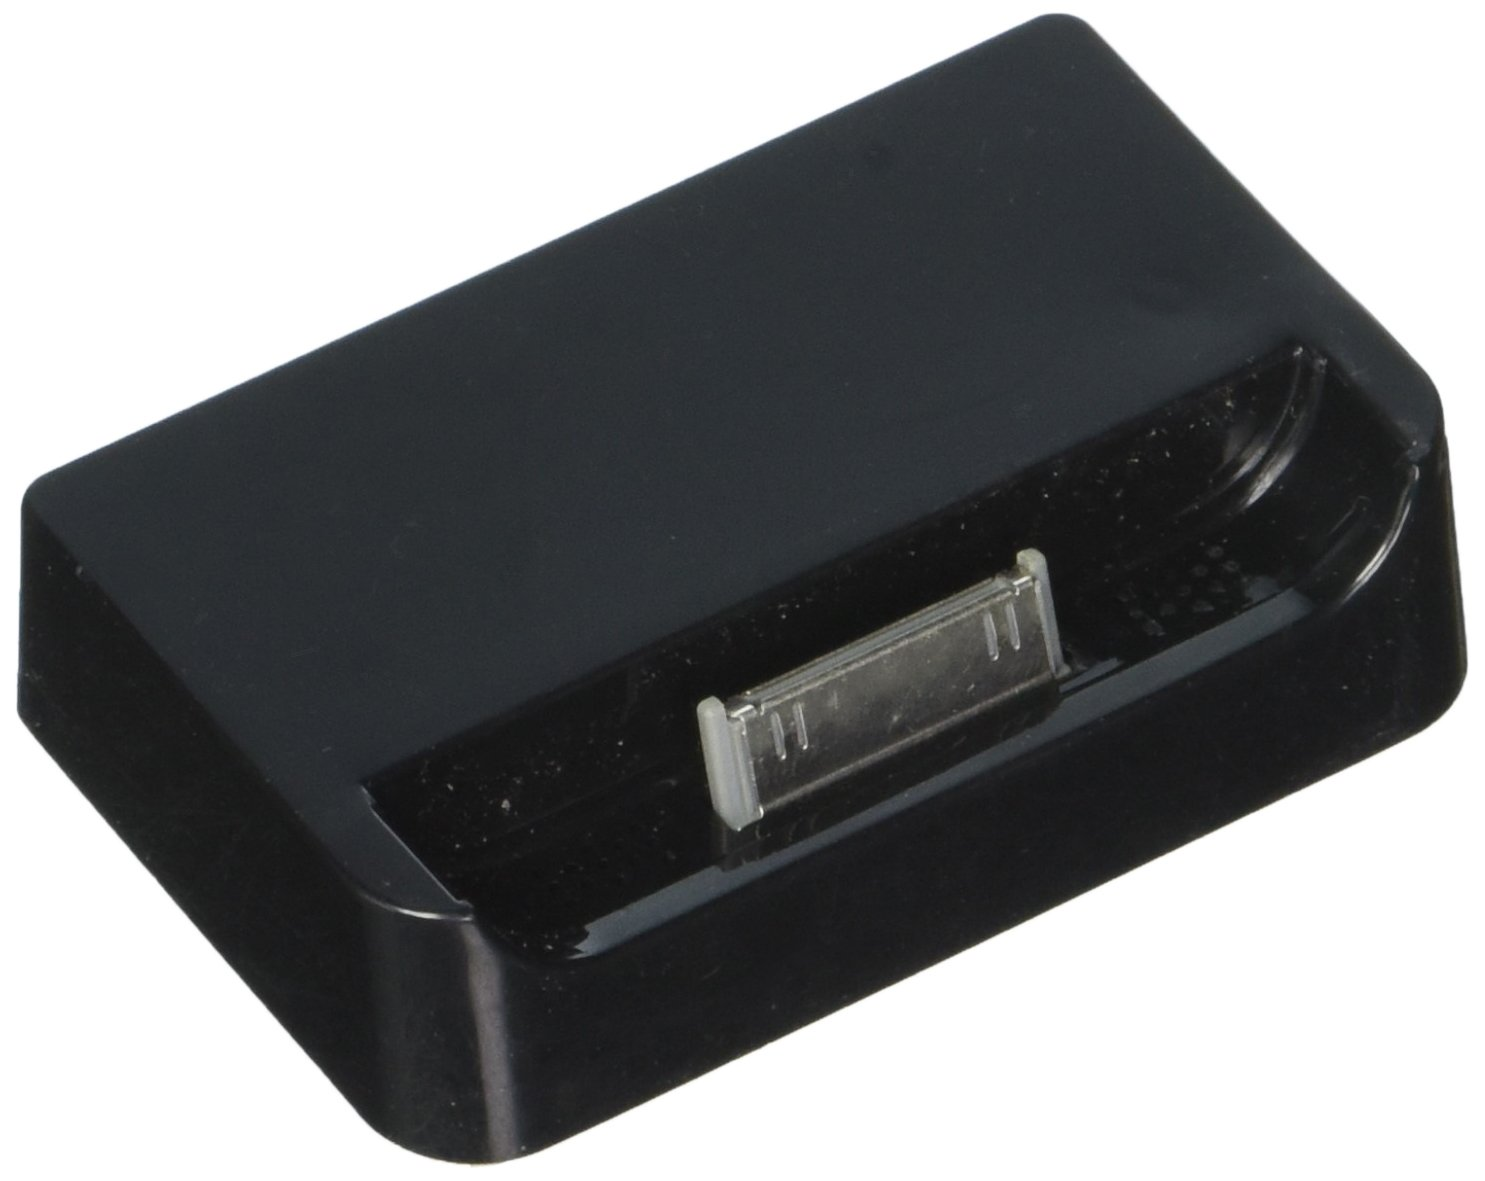 80%OFF Generic Desktop Charger for iPhone 4 - Retail Packaging - Black